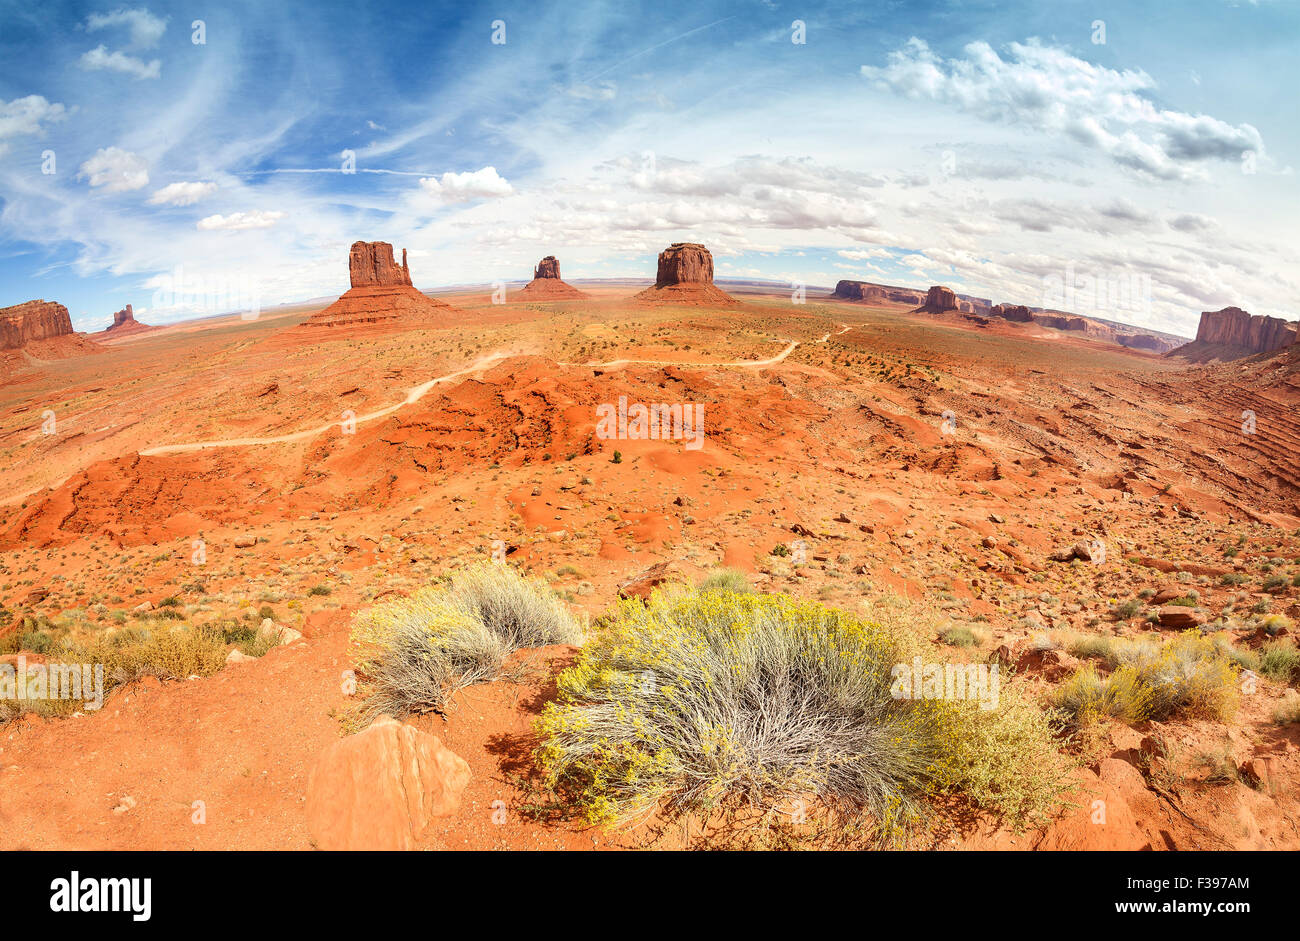 Fisheye lens view of the Monument Valley, Utah, USA. - Stock Image